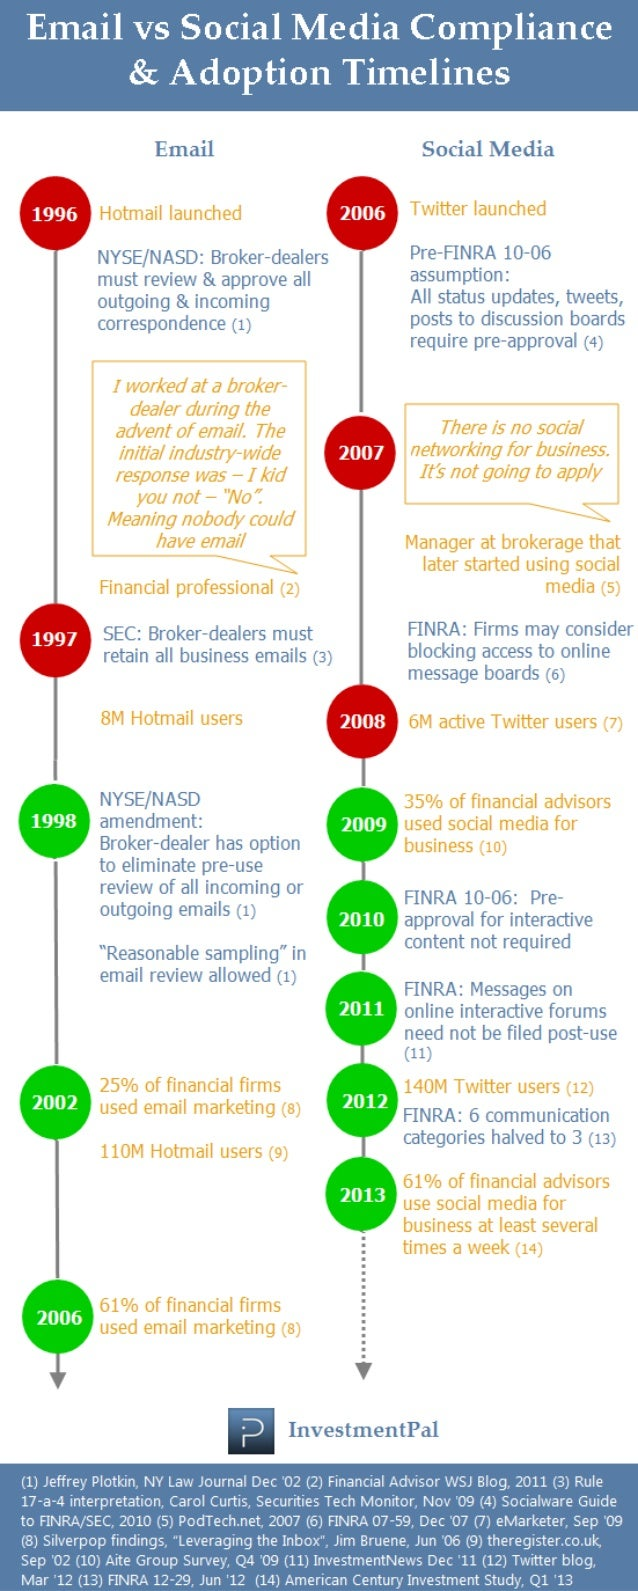 Email vs Social Media Compliance and Adoption Timelines